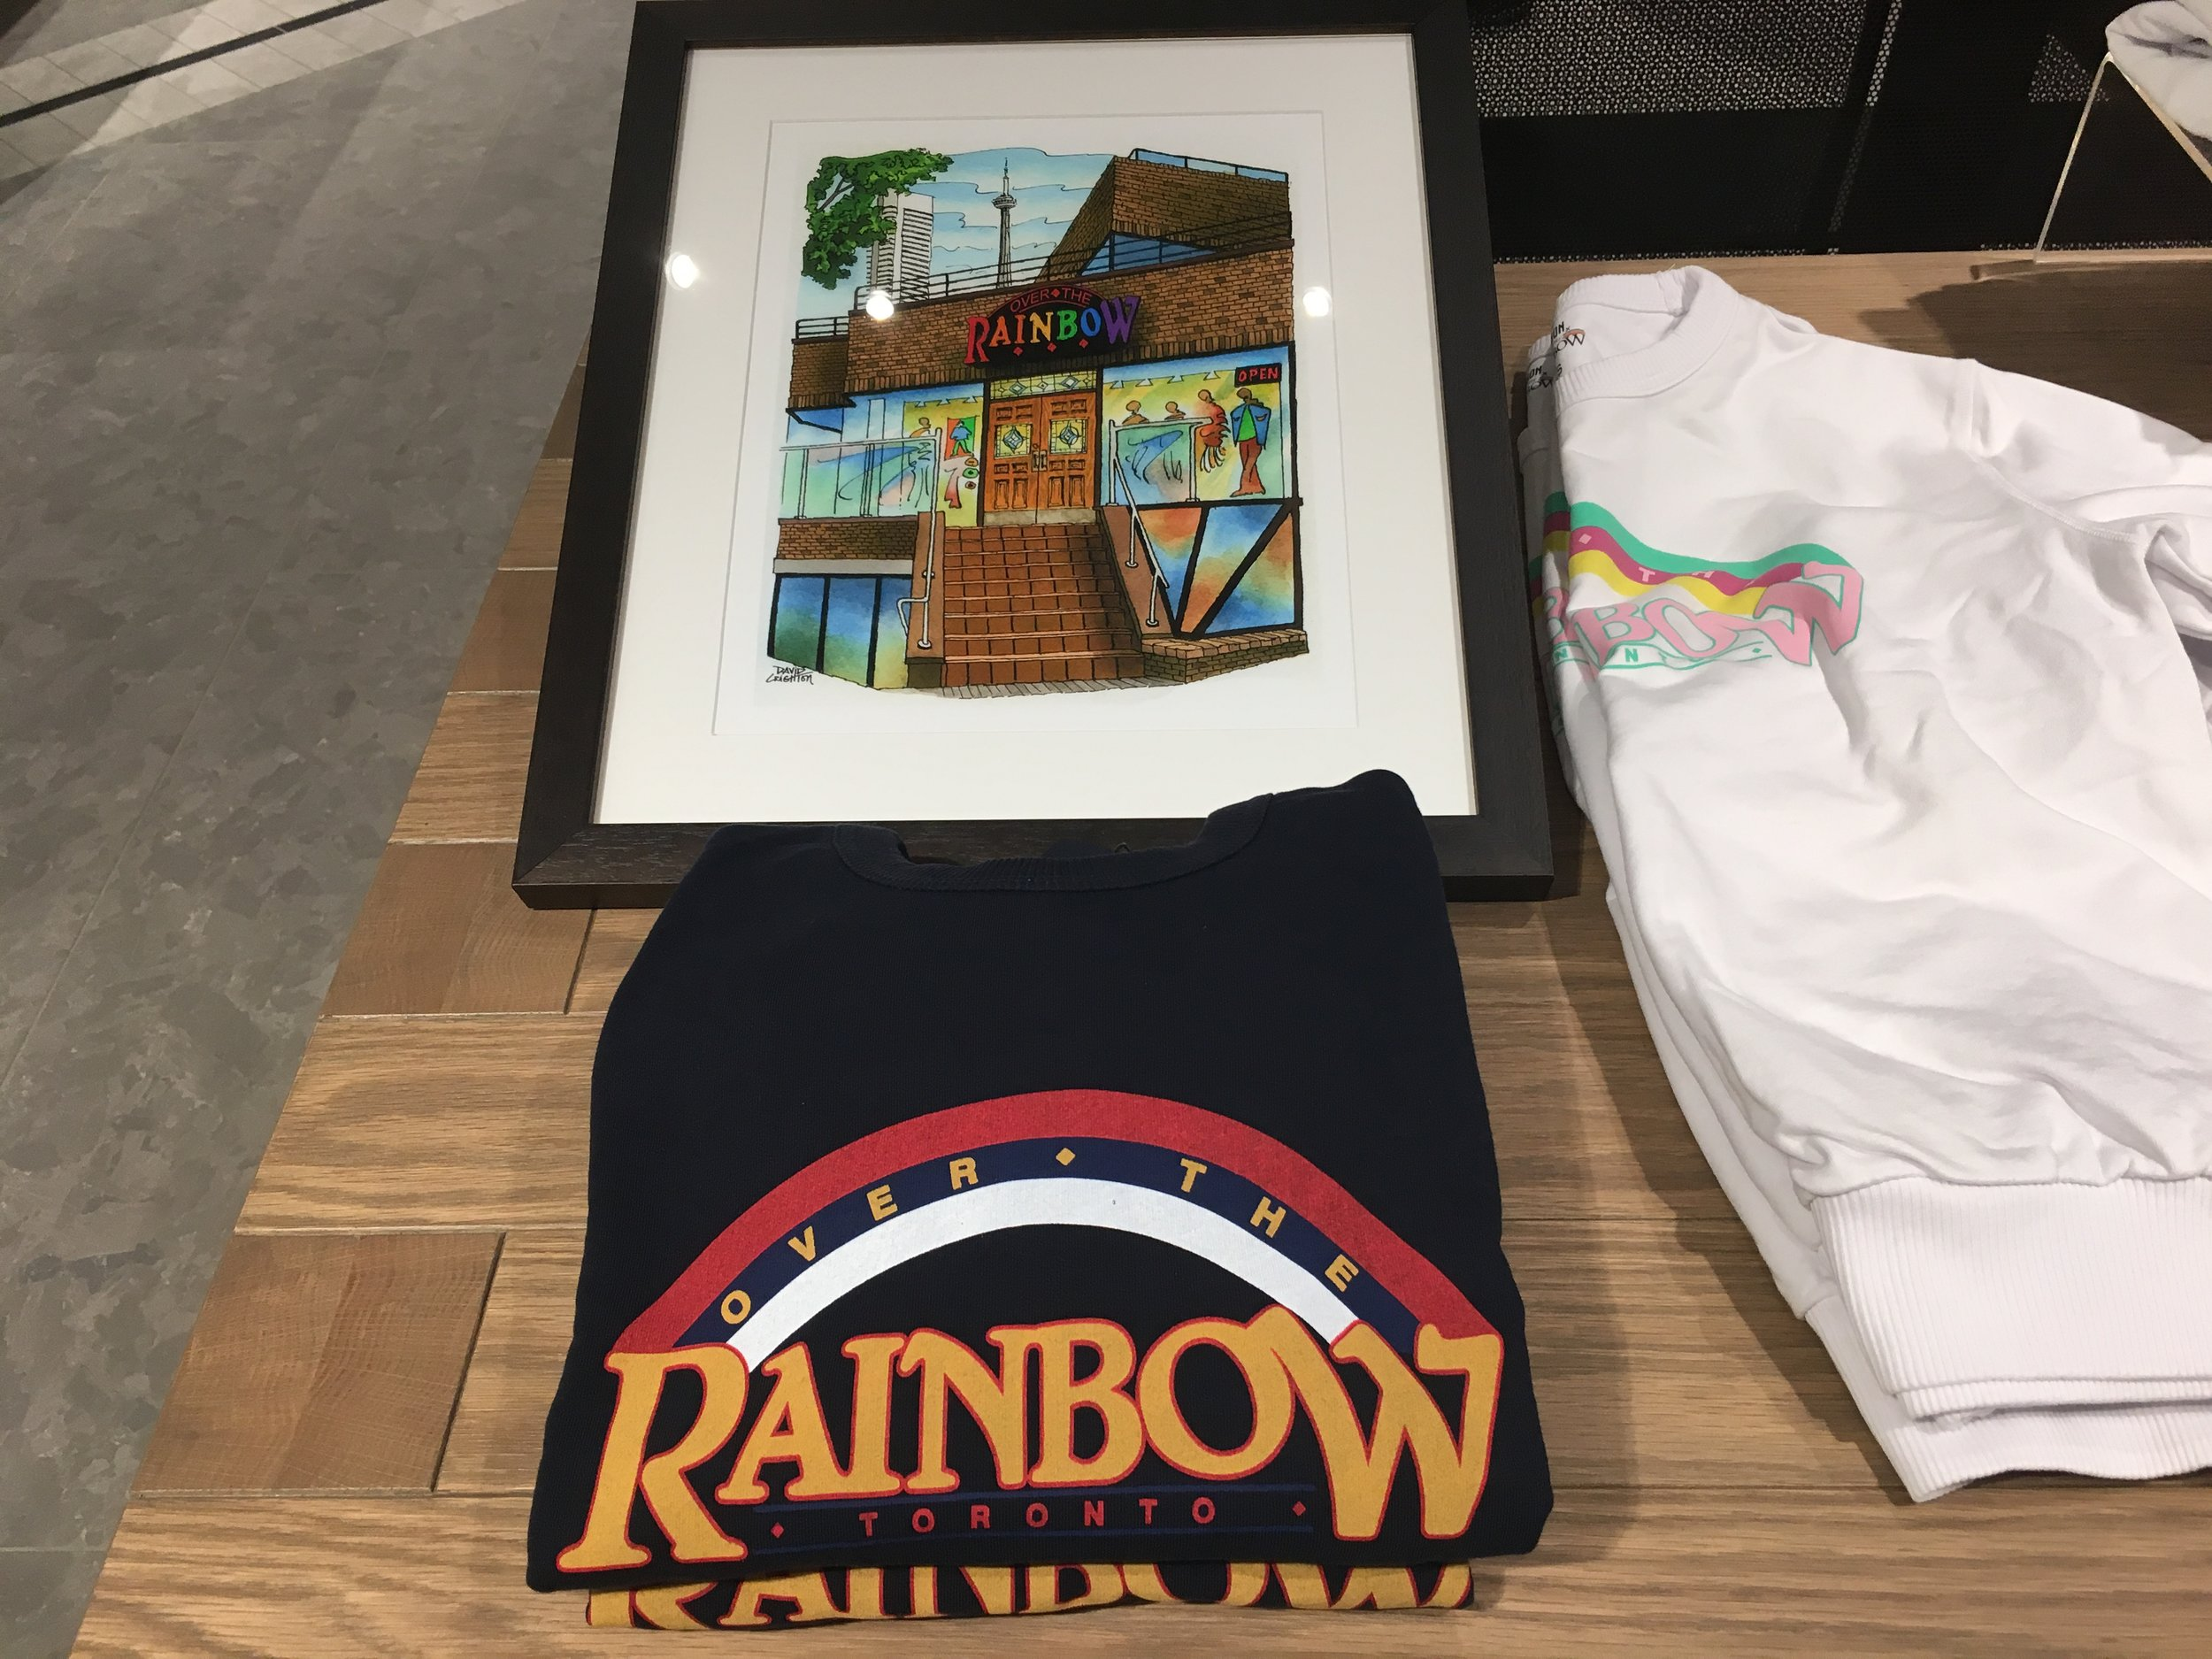 A framed photo of the former 101 Yorkville Avenue Over the Rainbow storefront, as well as sweatshirts with the former branding. Photo: Craig Patterson